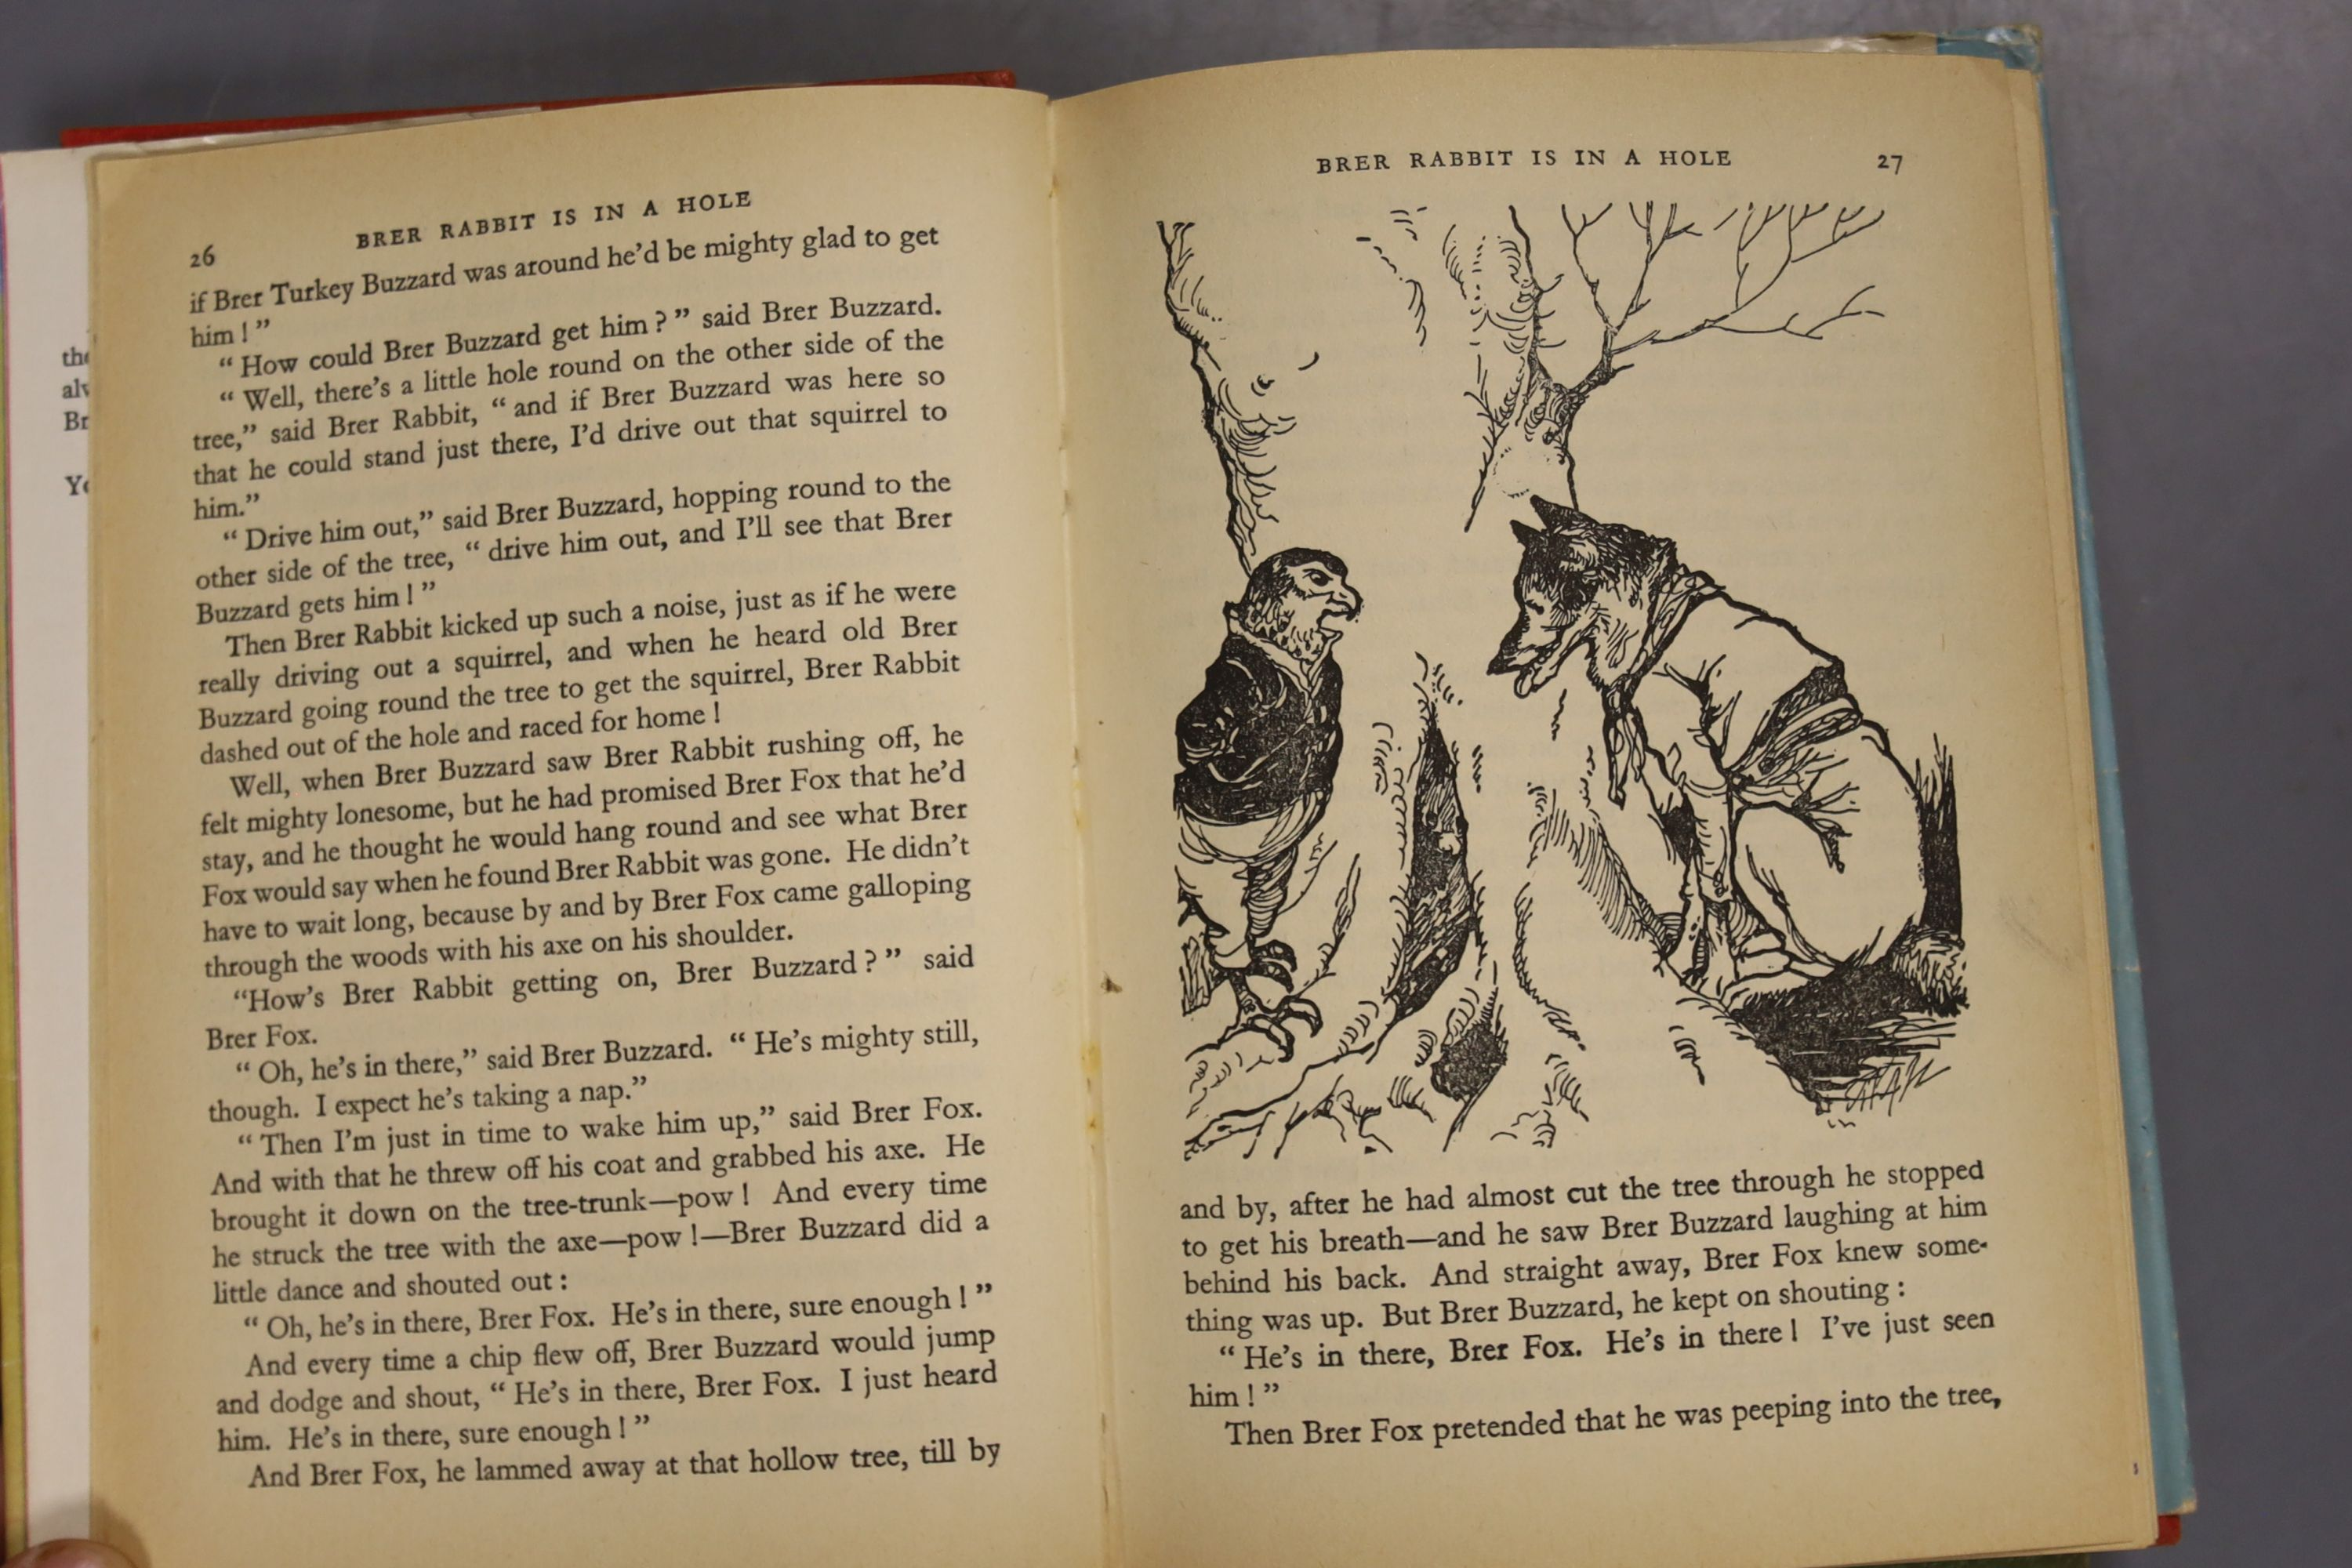 Johns, Capt W.W – Biggles In Australia, first edition, 16mo, hardback, (dj missing, spine sunned) - Image 7 of 10